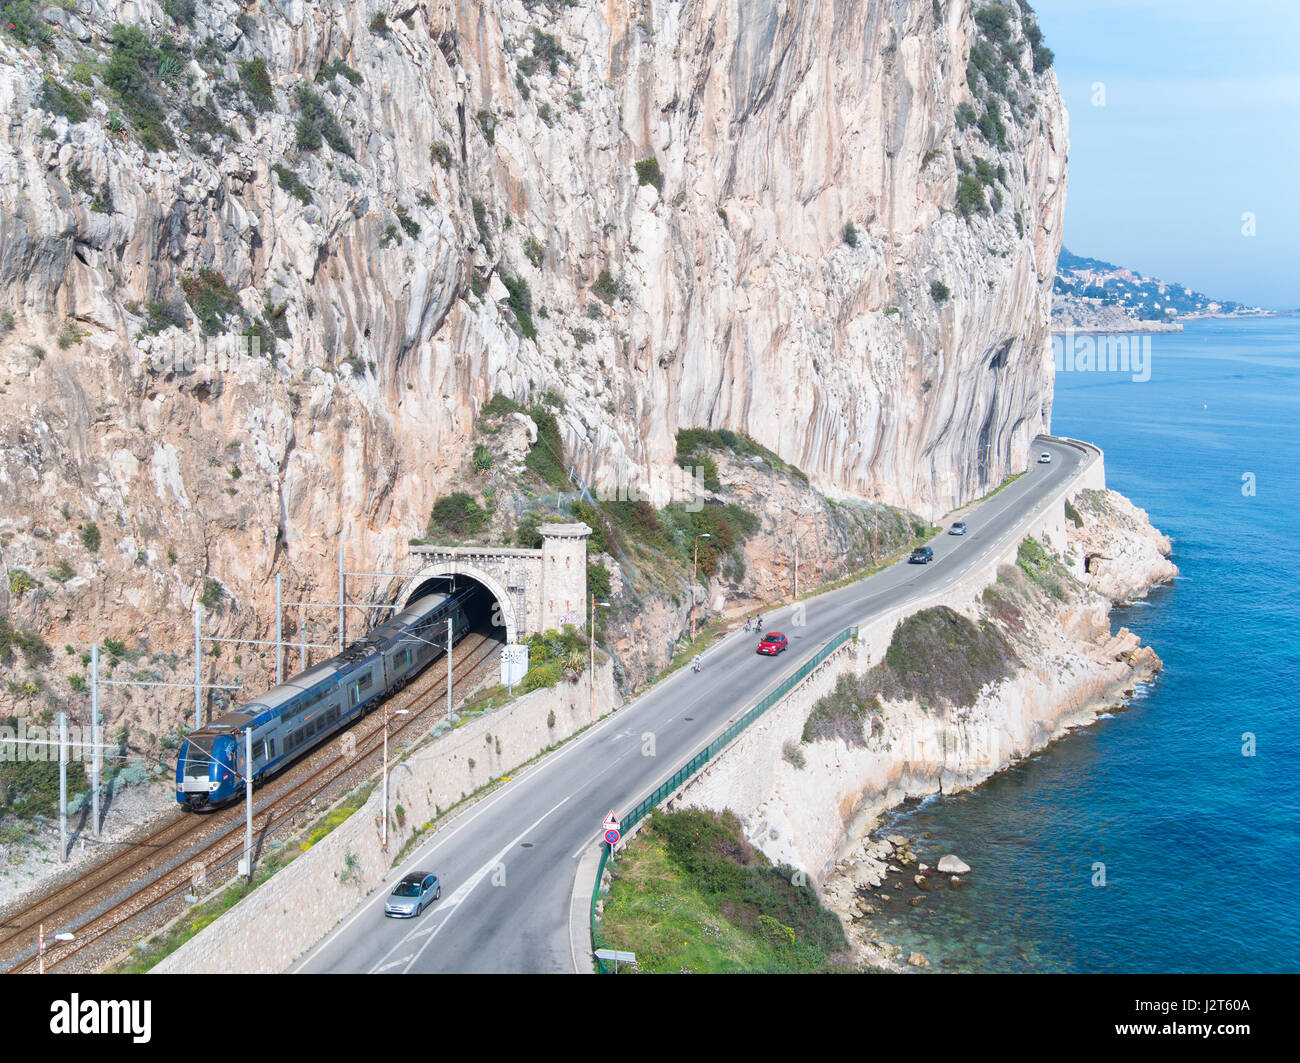 RAILROAD AND ROAD IN A TOPOGRAPHICALLY UNFRIENDLY REGION (aerial view). Between Beaulieu-sur-Mer and Eze Bord de - Stock Image